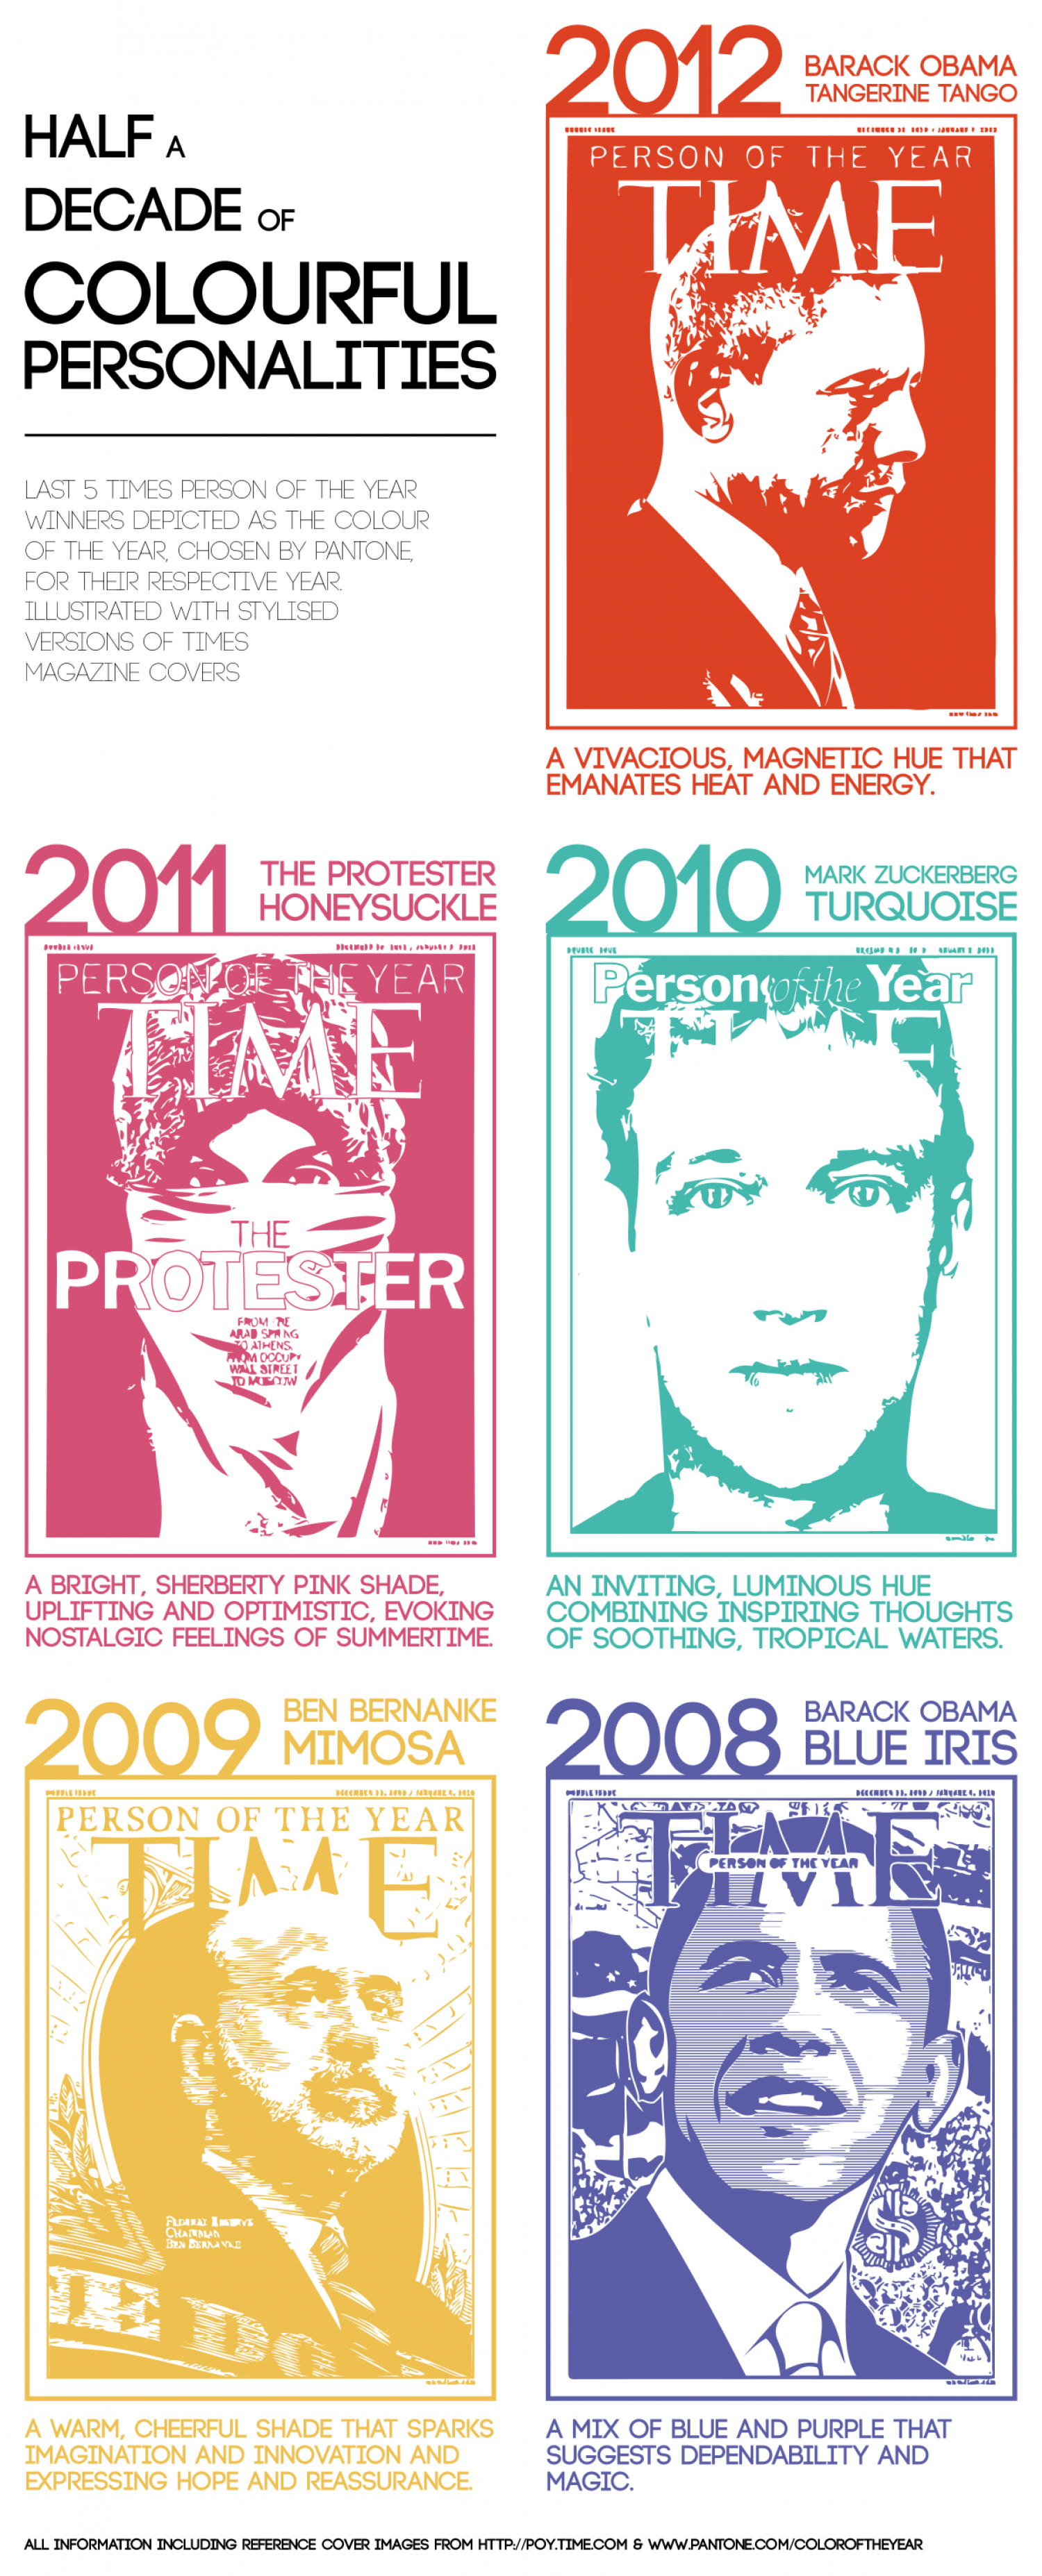 Half a Decade of Colourful Personalities Infographic